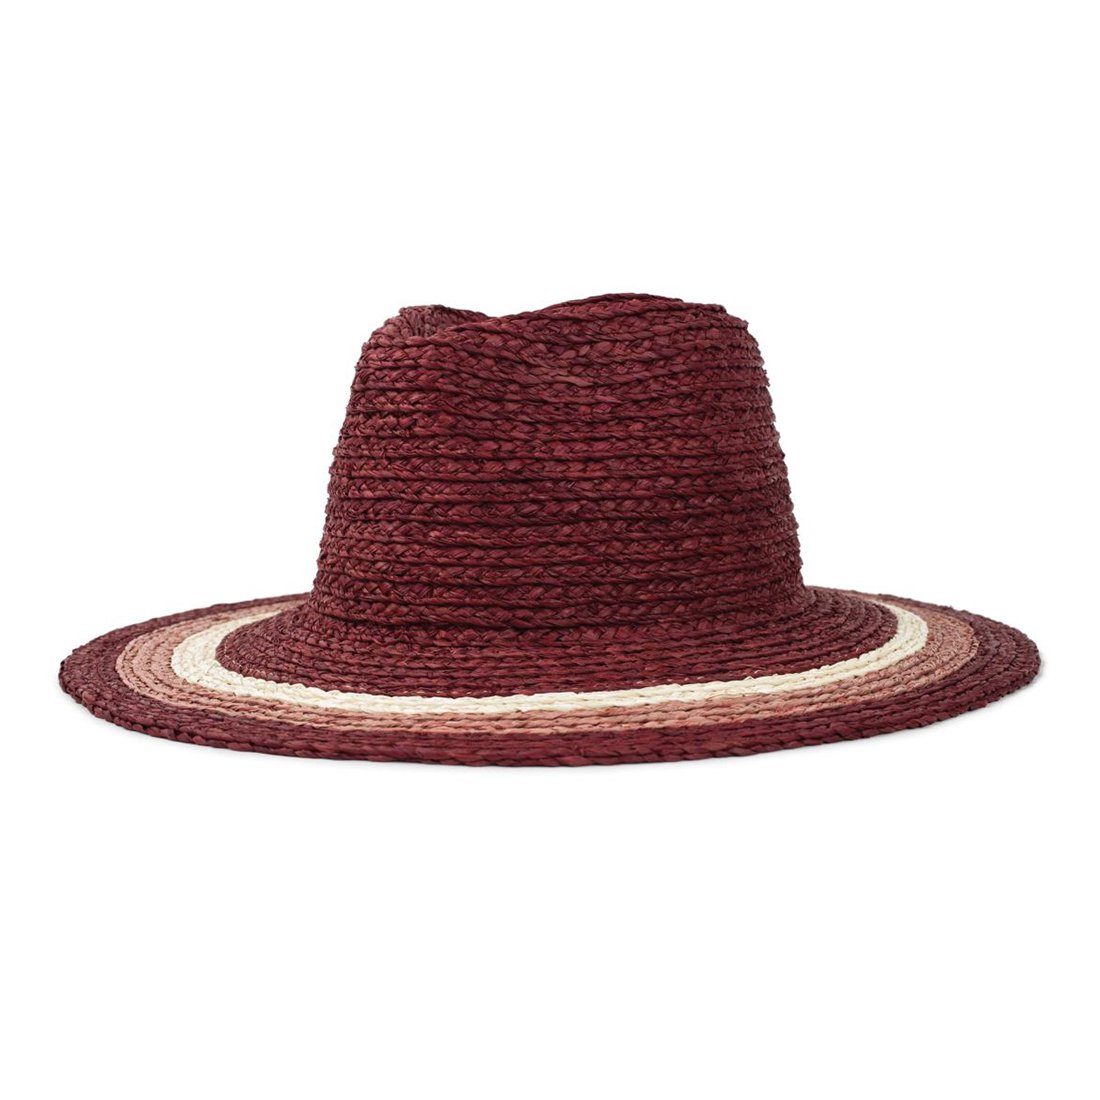 BRIXTON #HAMPTON FEDORA -RED/BLUSH/TAN (Women's)